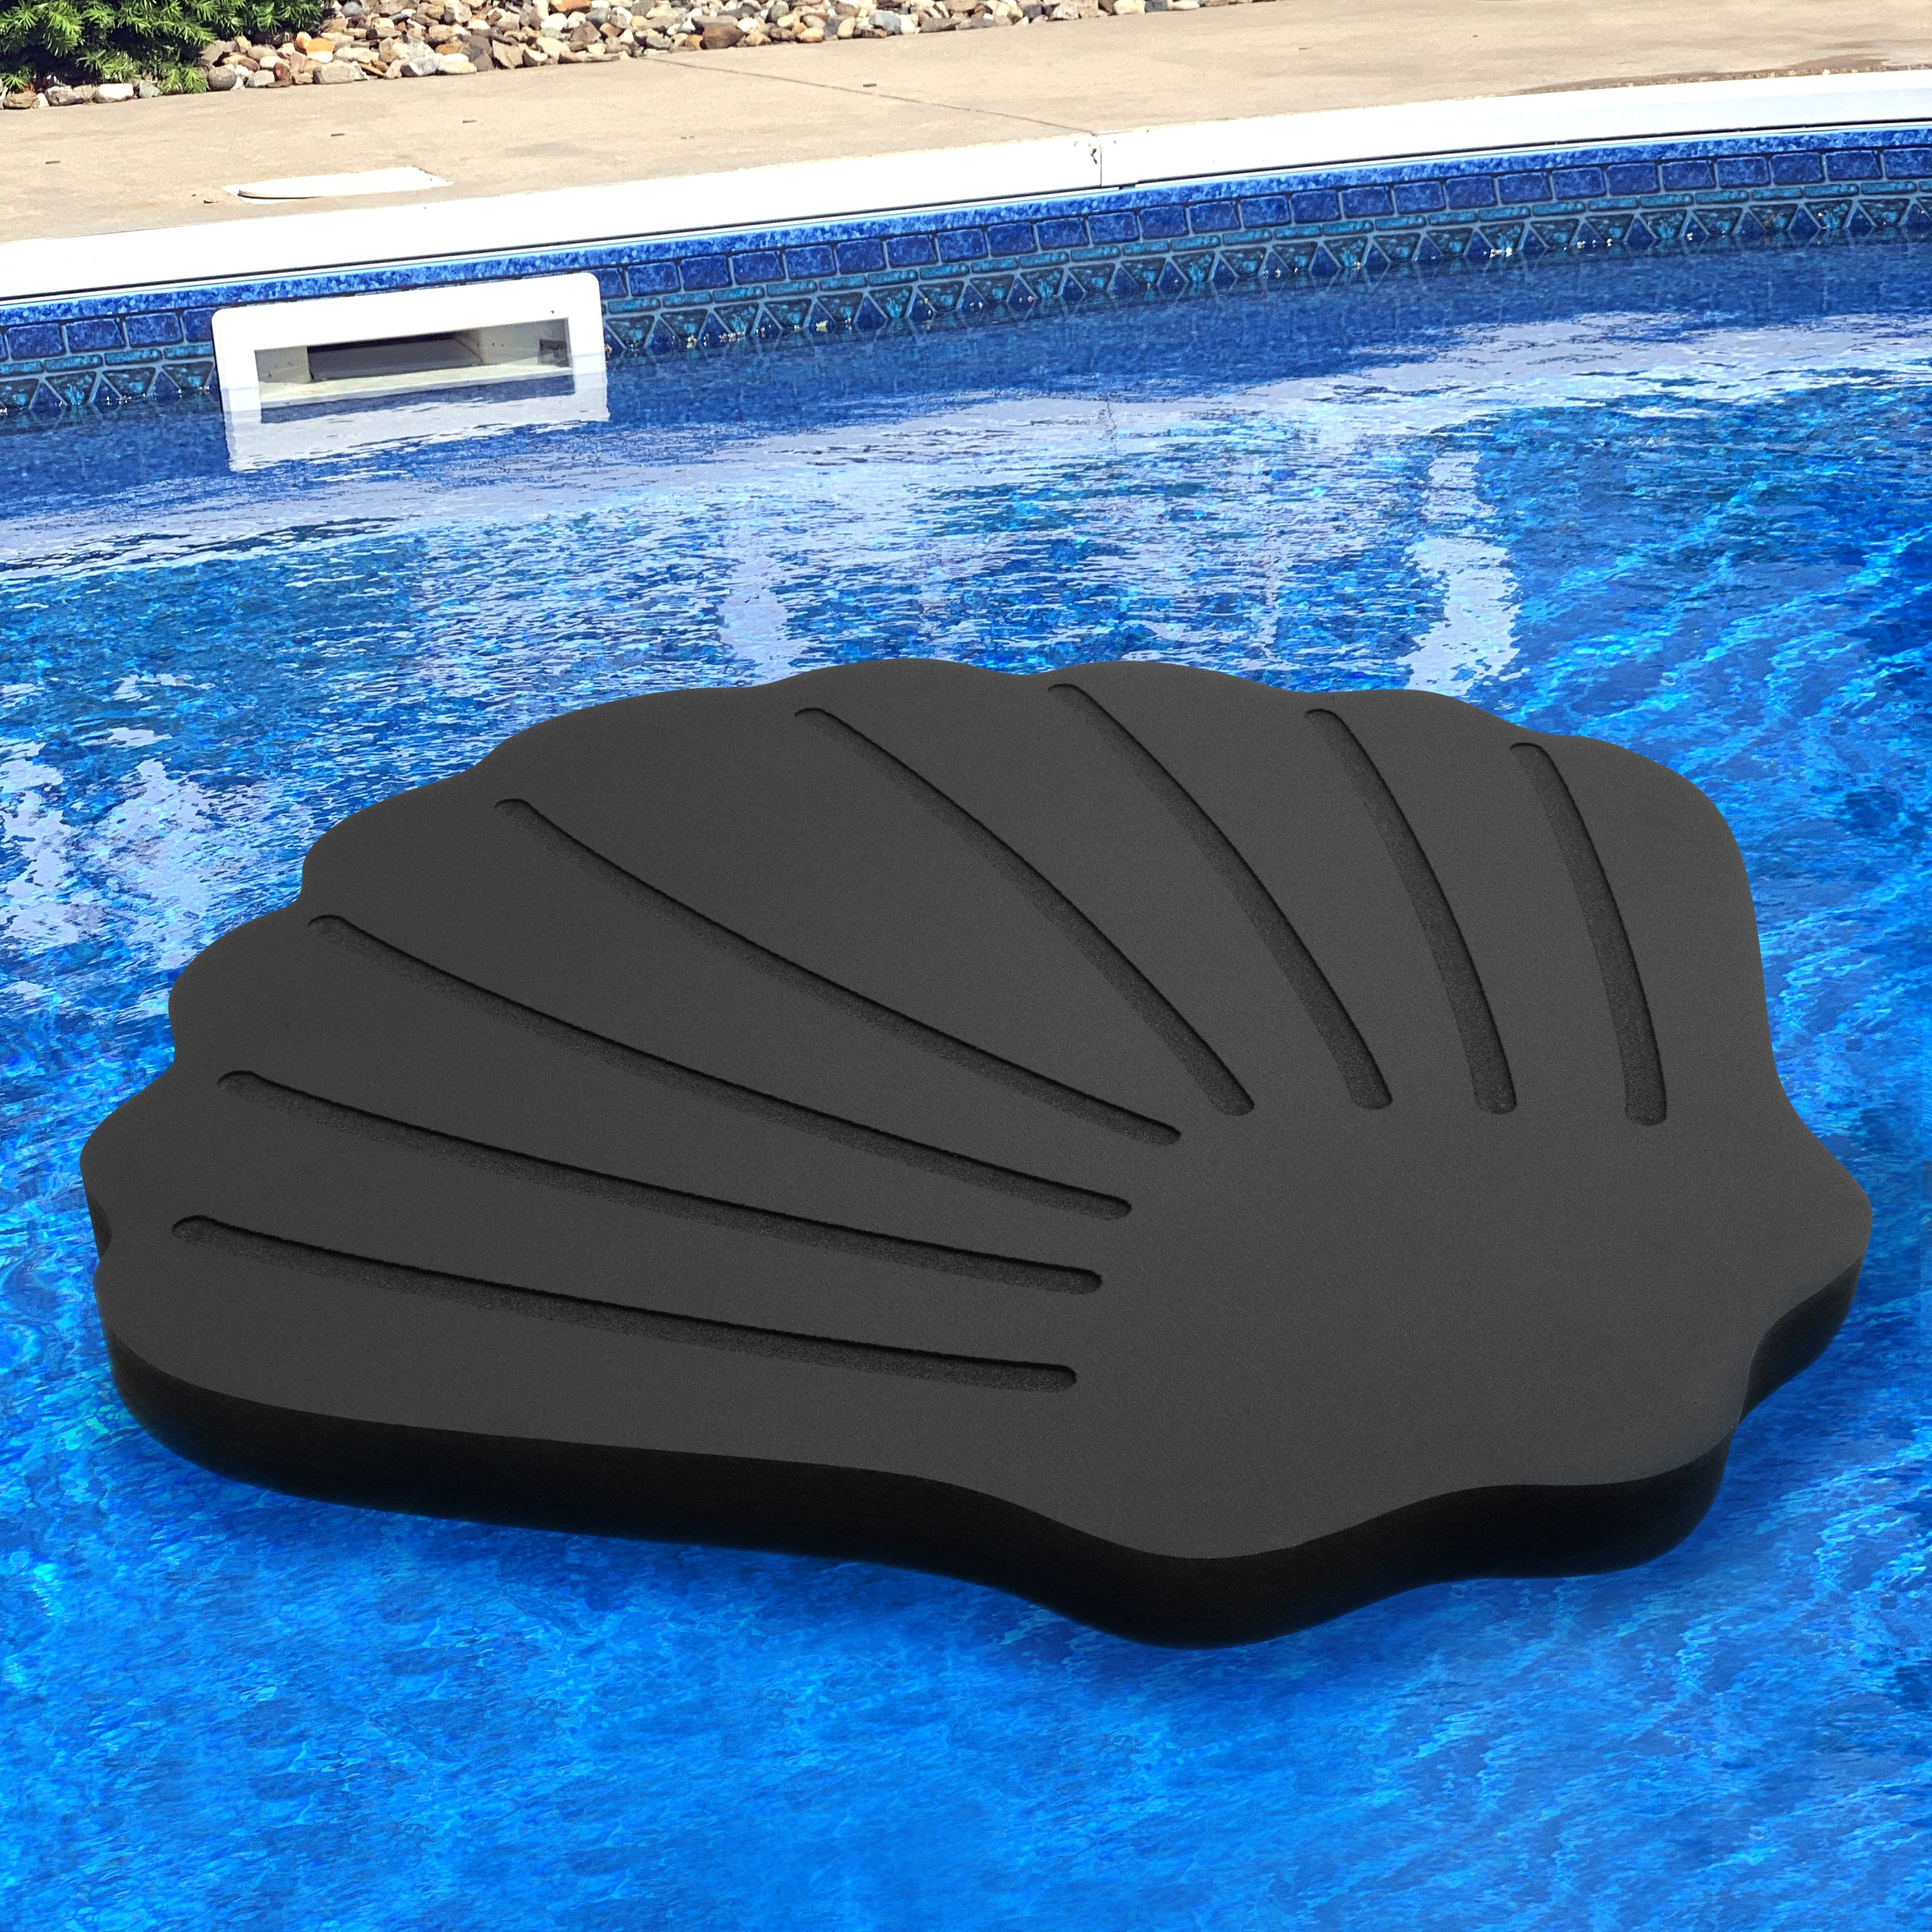 Floating Sea Shell Lounging Pool Float 40""